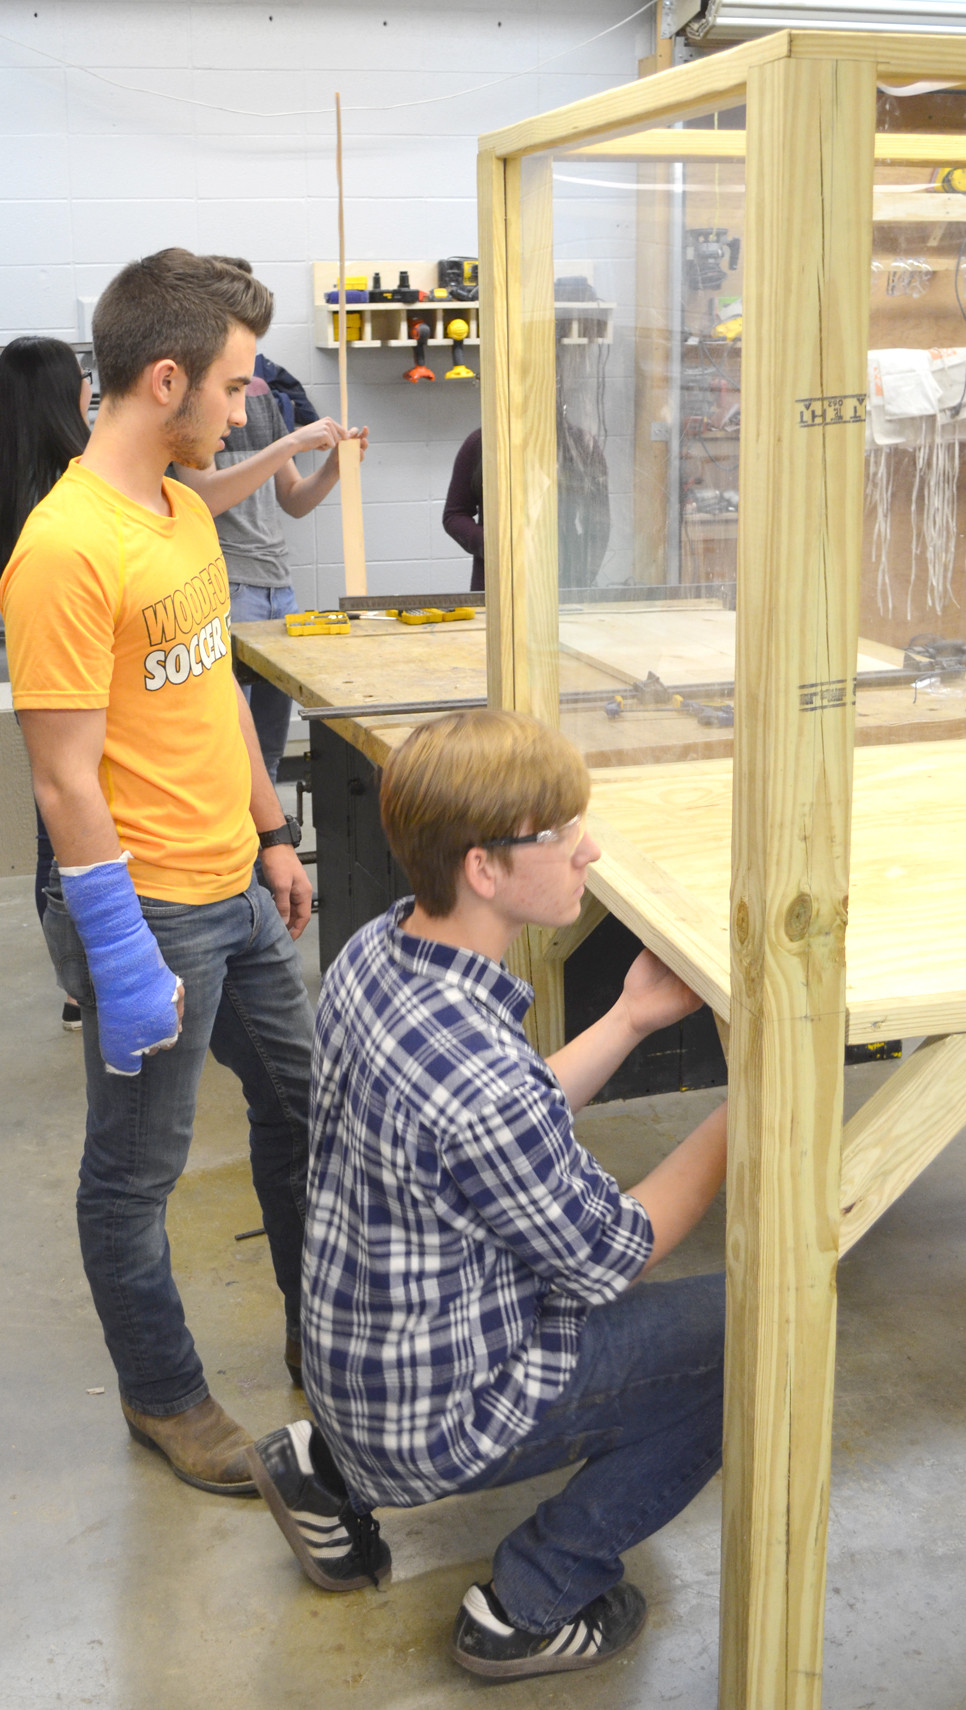 MAX LIPPERT, left, and Evan Williams worked on one of the Invisible Cities informational booths for Spark Versailles. The downtown festival comes to Versailles on April 8, 9 and 10. (Photo by Bob Vlach)